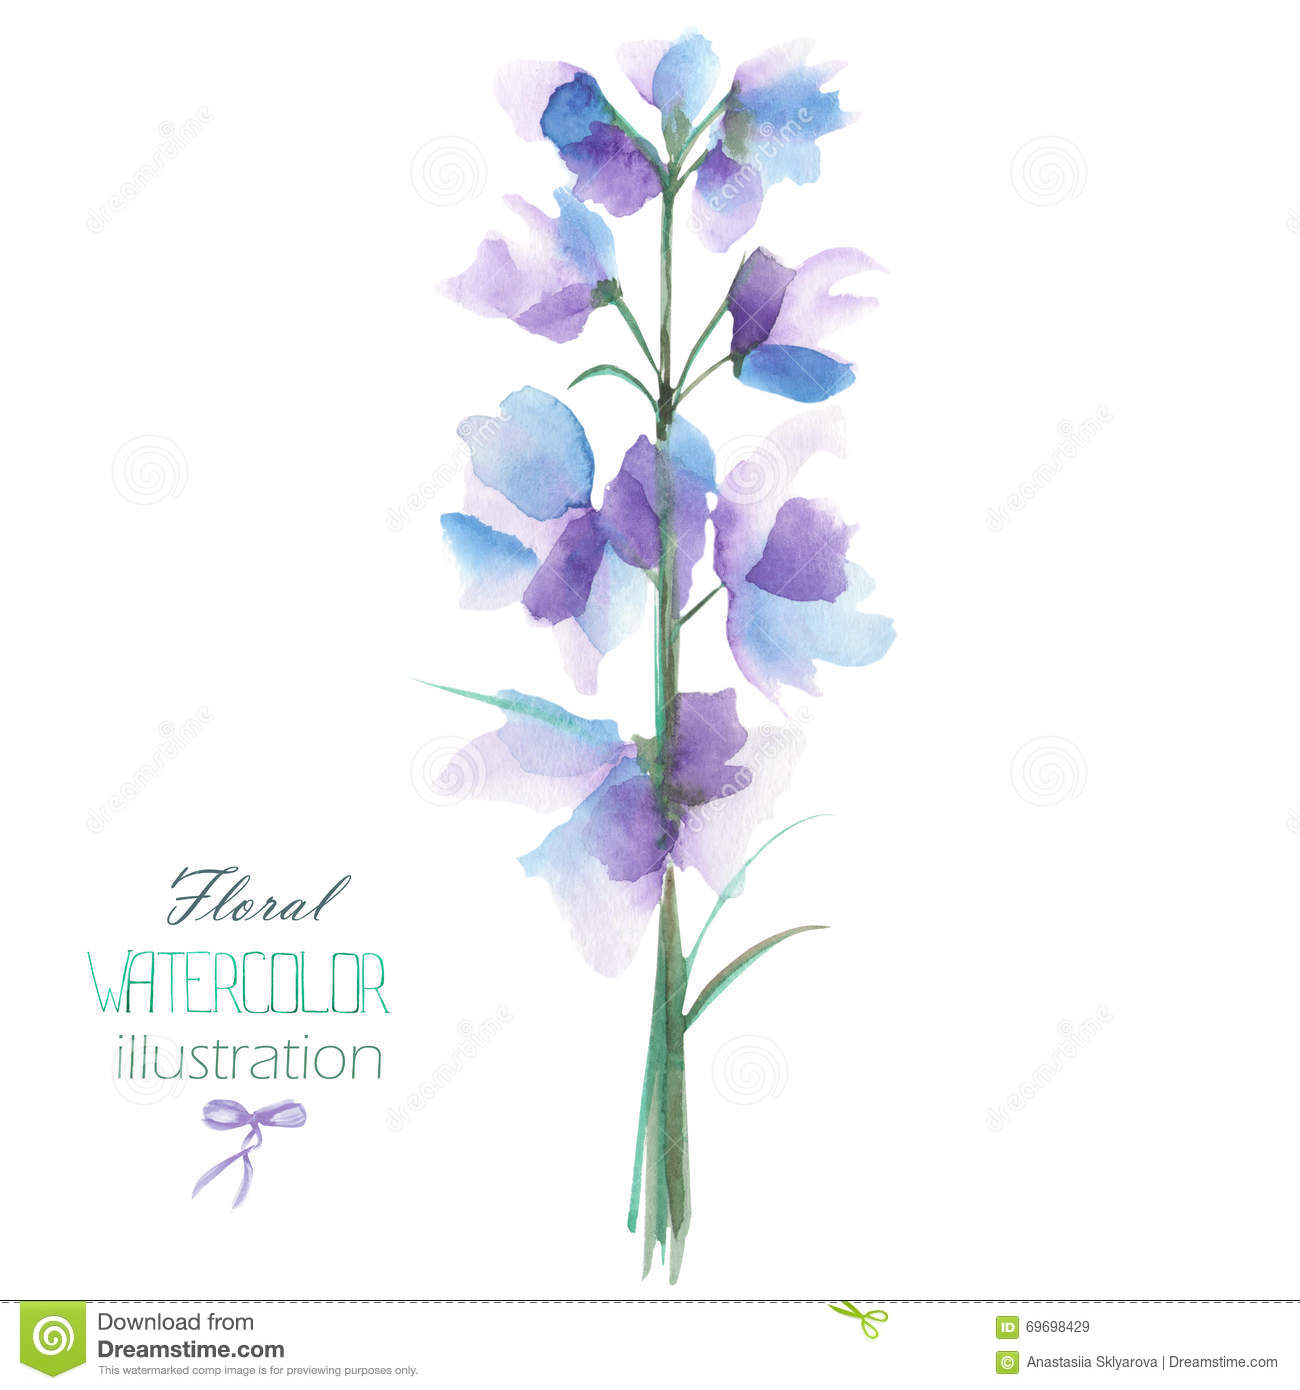 Delphinium clipart #6, Download drawings